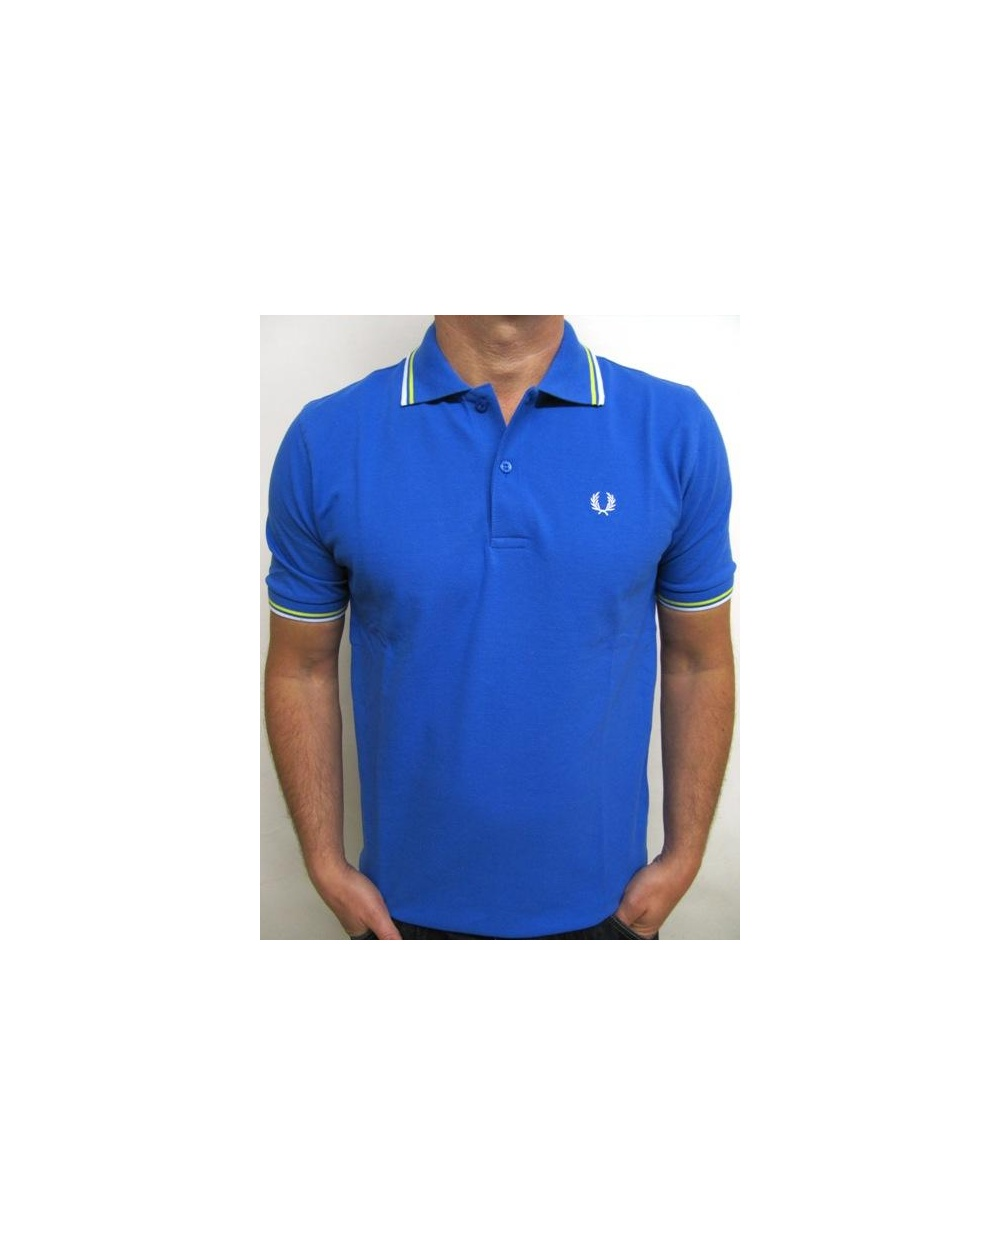 10e87a7c1be Fred Perry Twin Tipped Polo Shirt Cobalt White Yellow - fred perry mens  black polo shirt